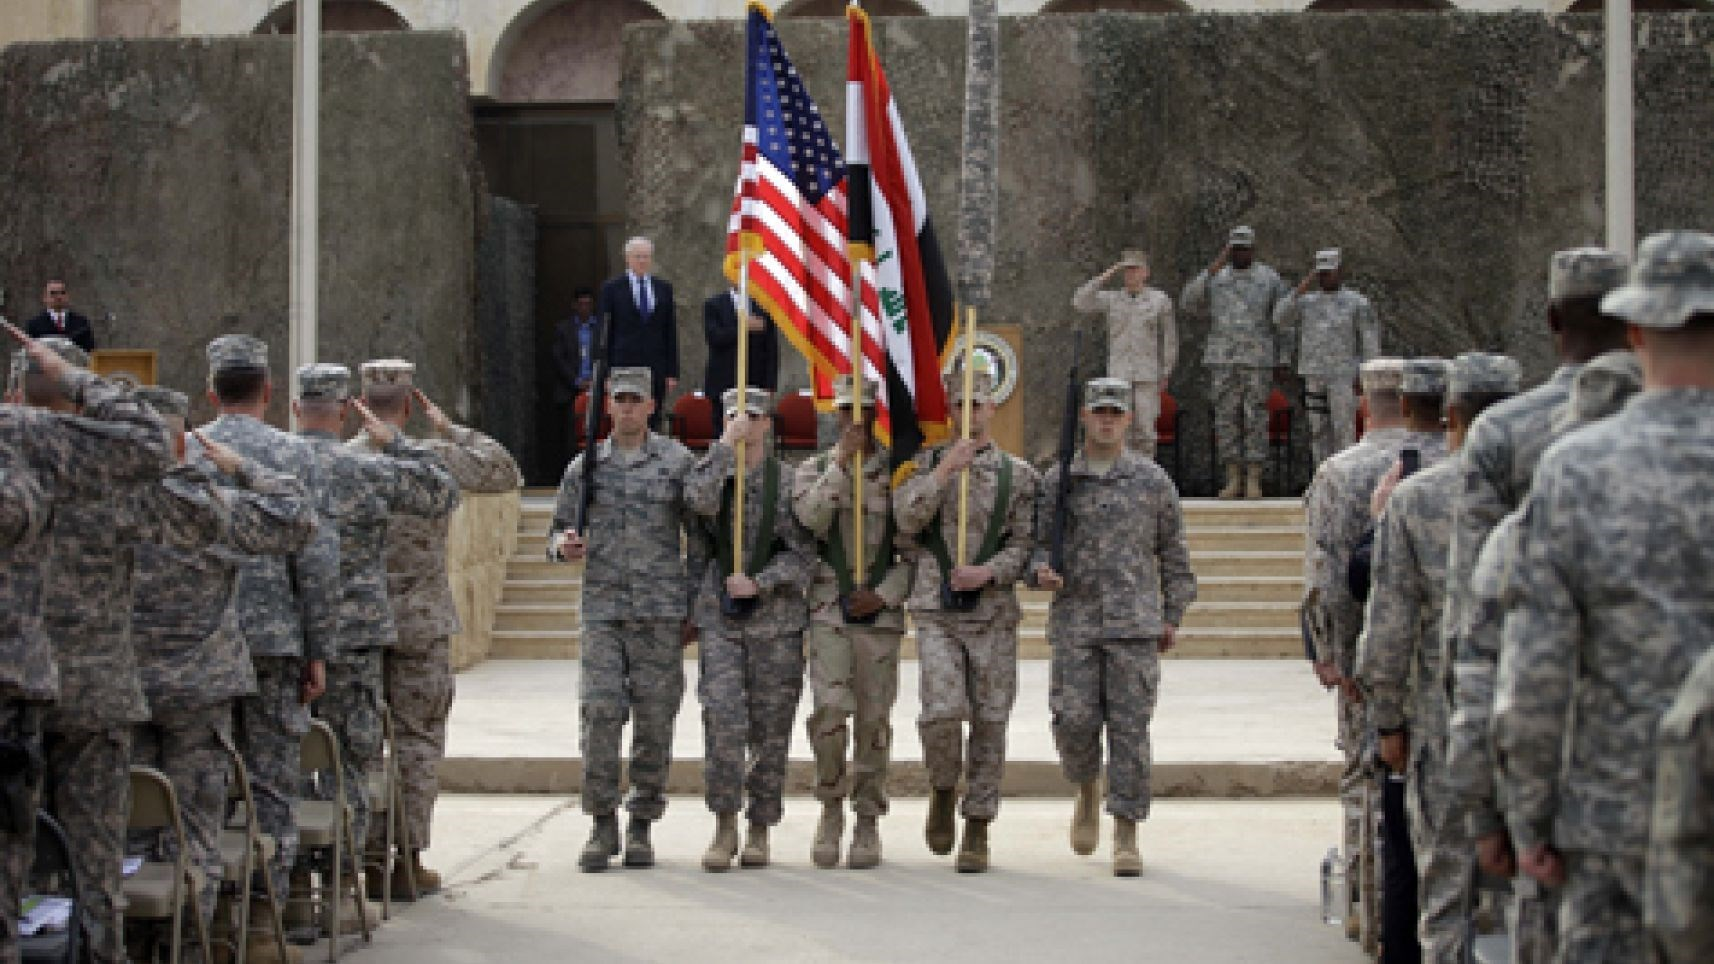 A ceremony marks the end of the US military mission in Iraq, December 15, 2011. Photo: AP